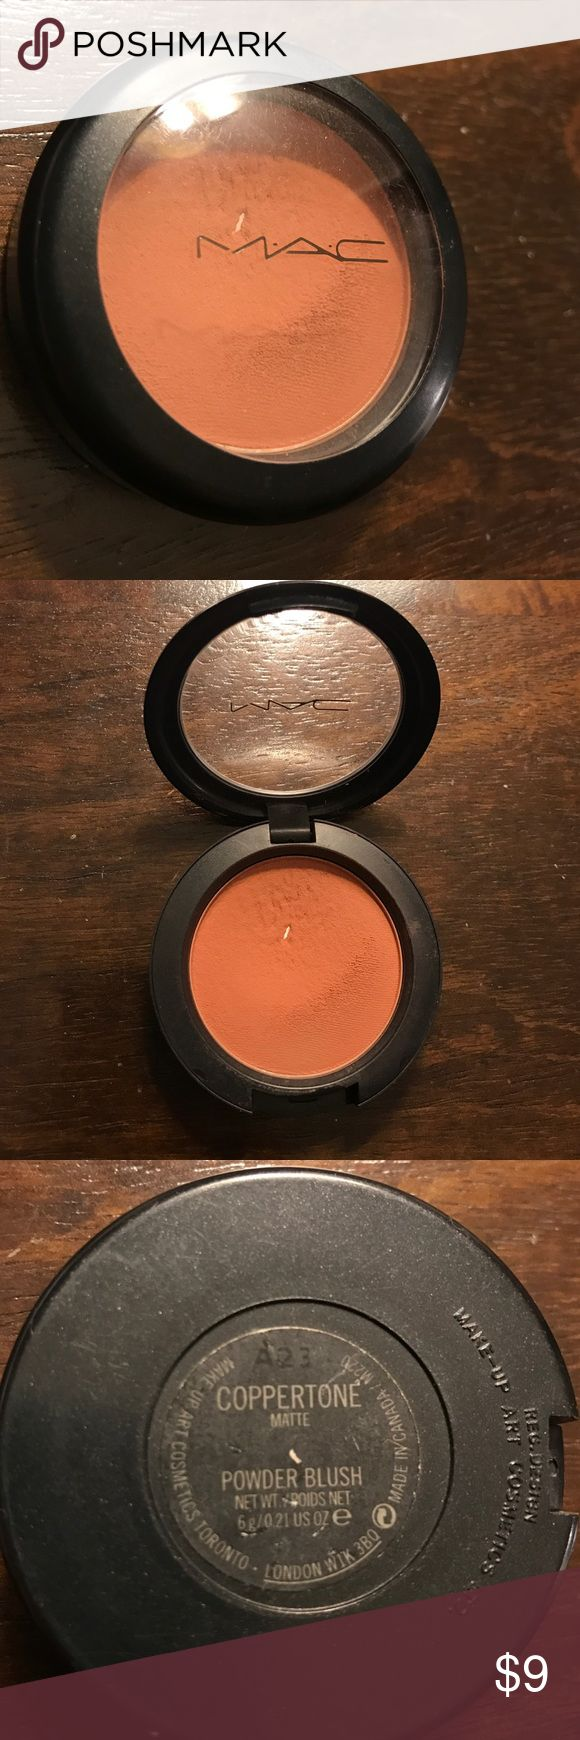 MAC Coppertone matte blush MAC Cosmetics Coppertone blush. Well loved and at a great price. Used as a blush and bronzer. Amazing color! Purchased from a MAC store. MAC Cosmetics Makeup Blush